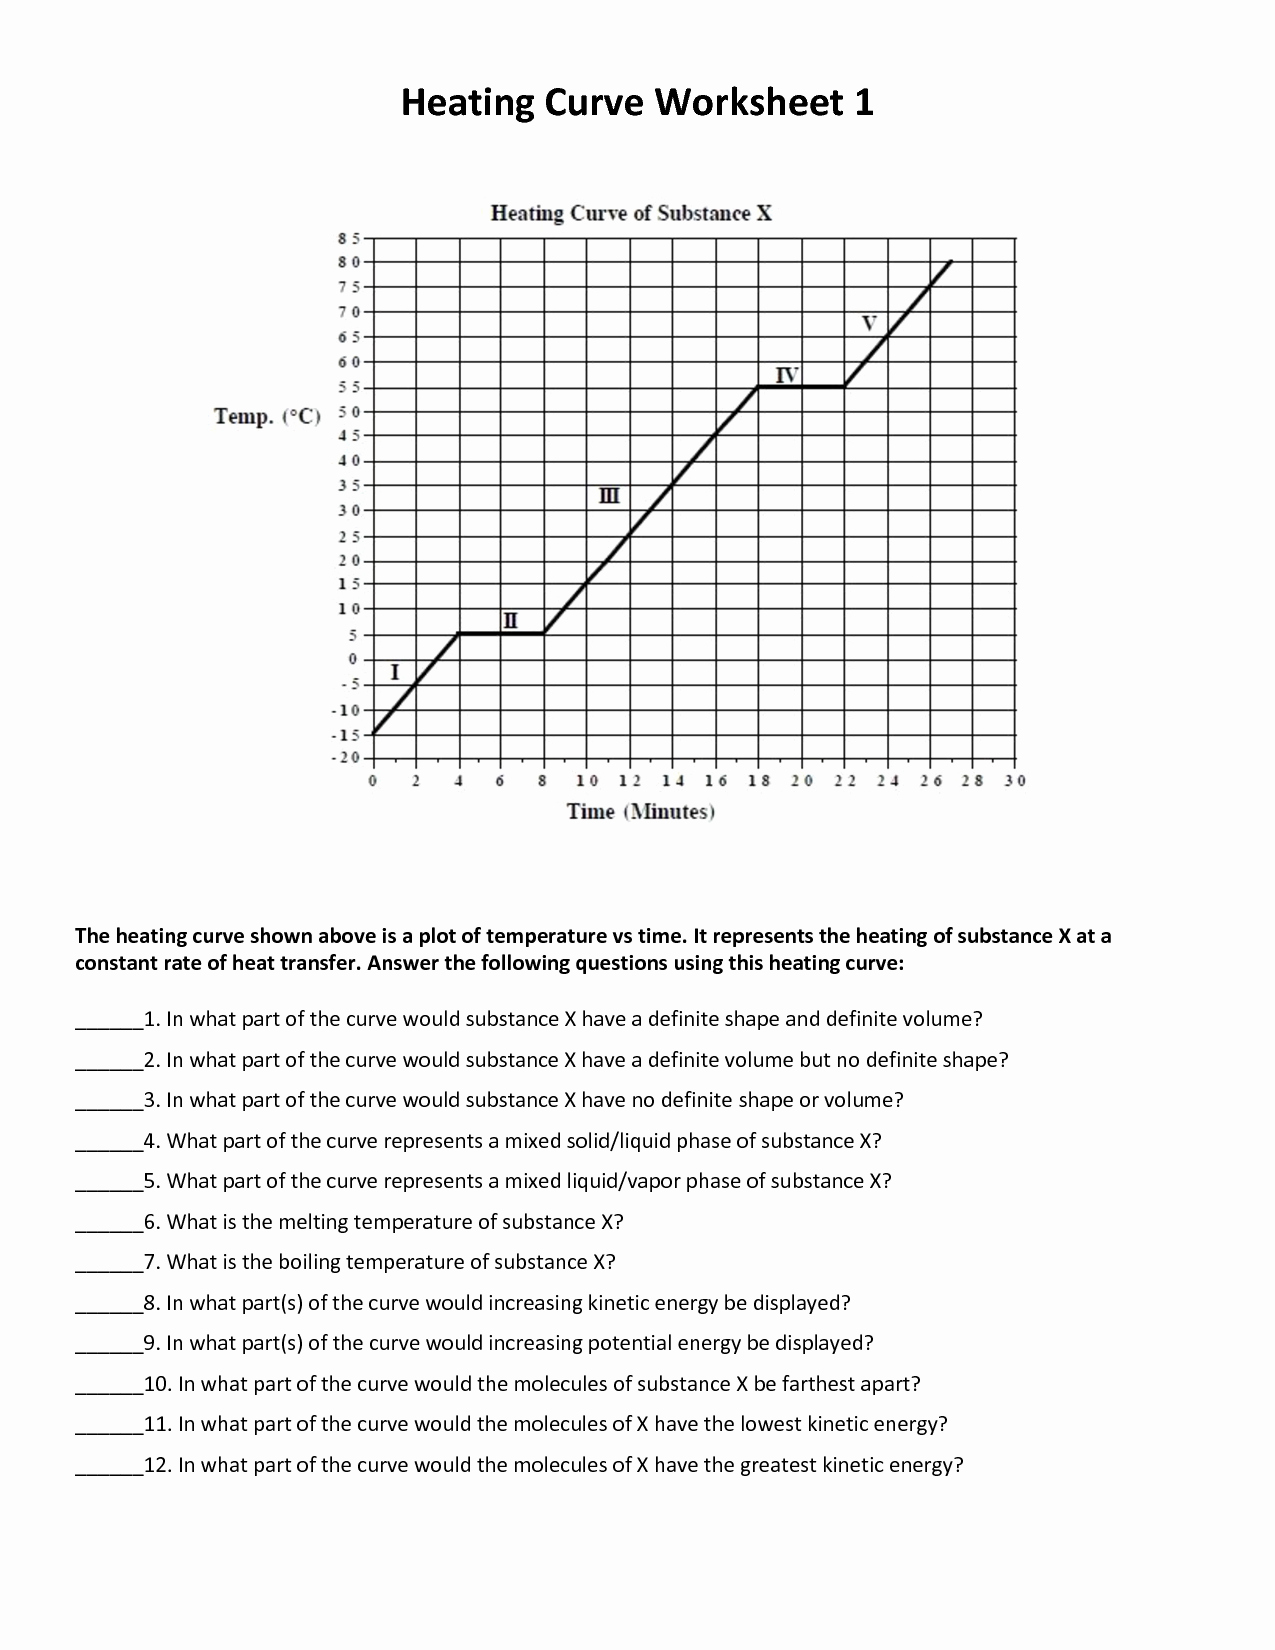 Heating Curve Worksheet Answers Luxury 1st Quarter Robert E Lee Chemistry